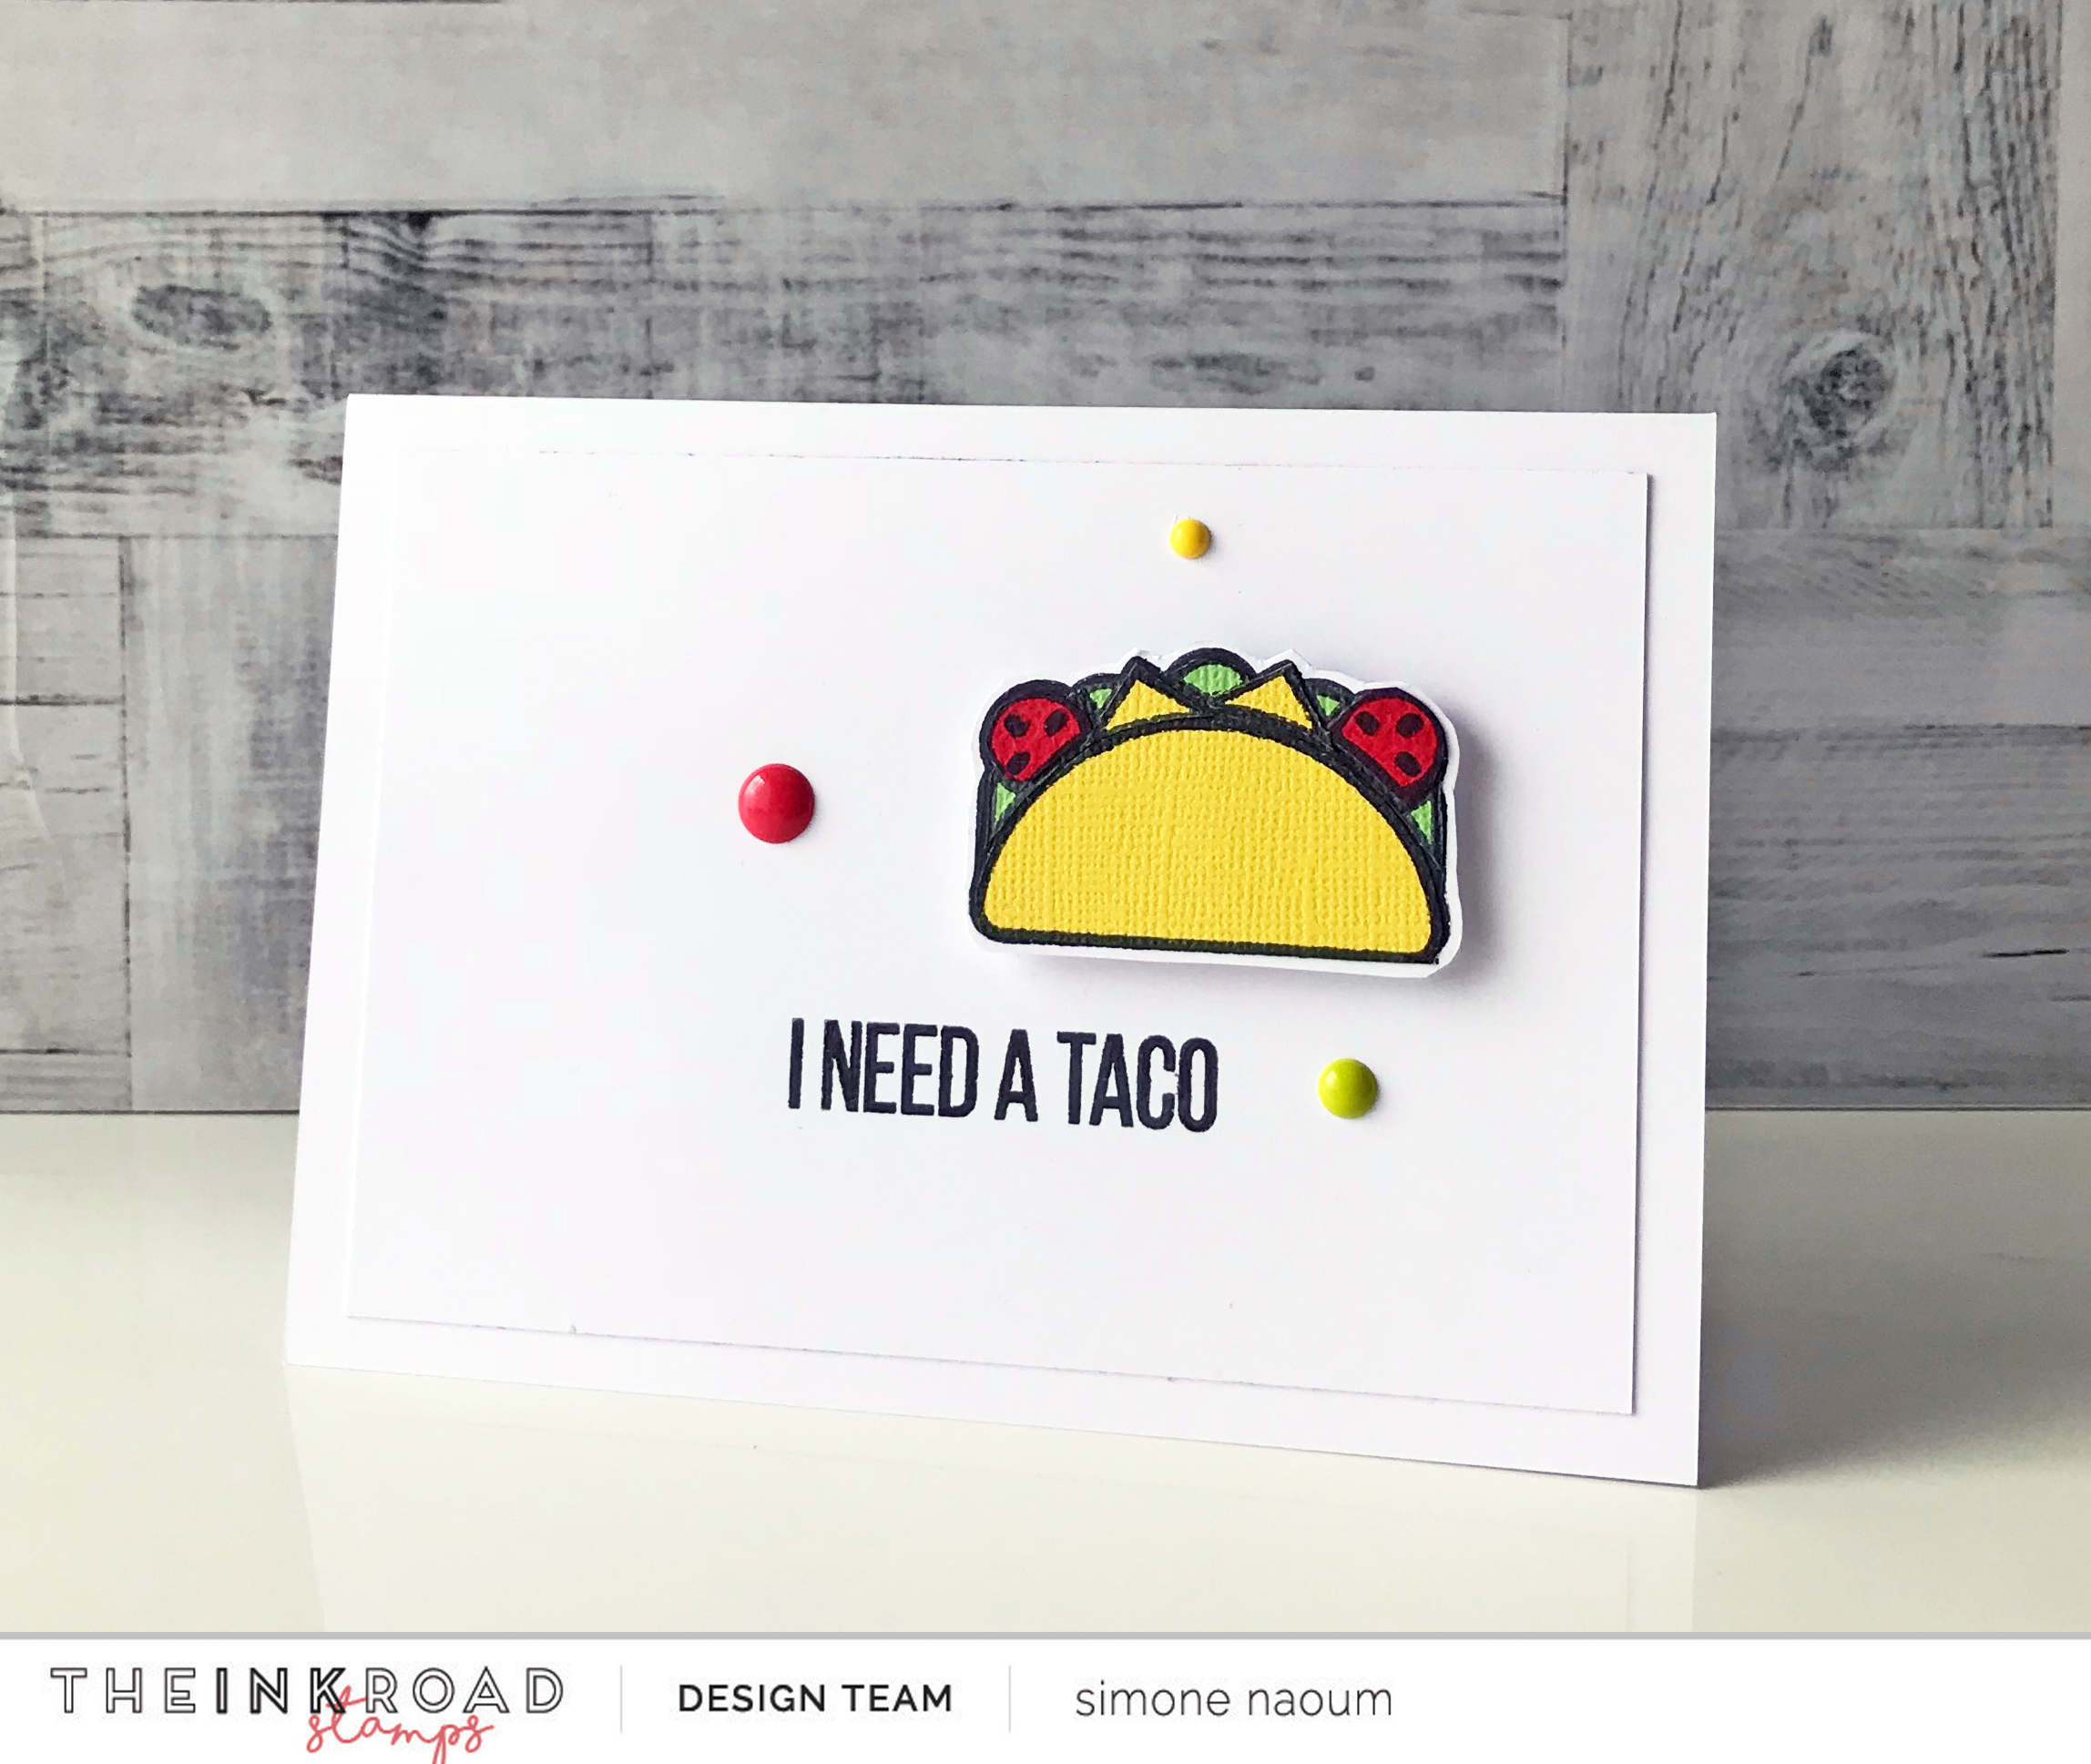 Do you need a Taco? I definitely need a Taco!